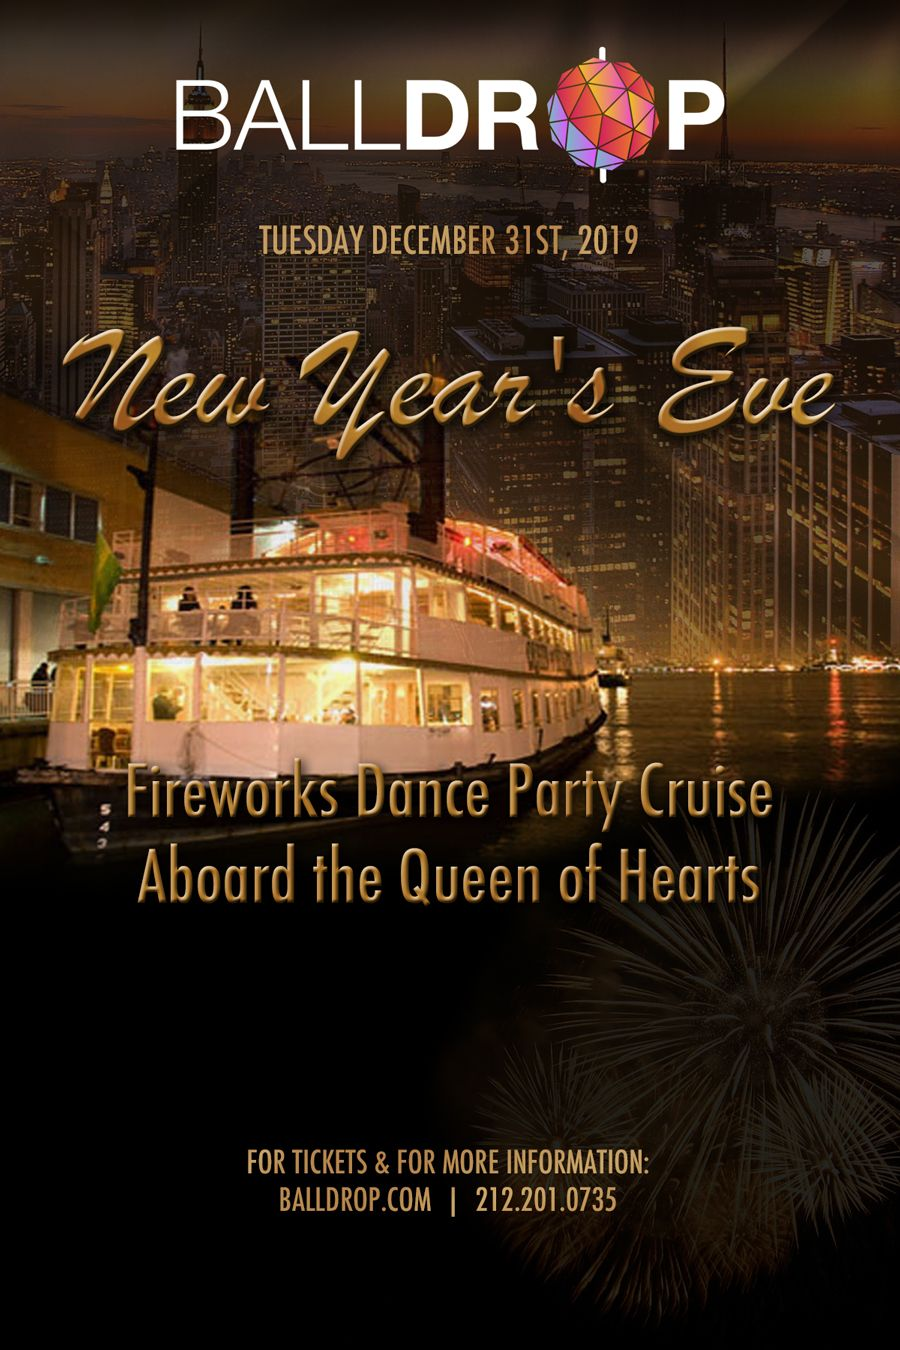 New Year's Fireworks Dance Party Cruise Aboard the Queen of Hearts